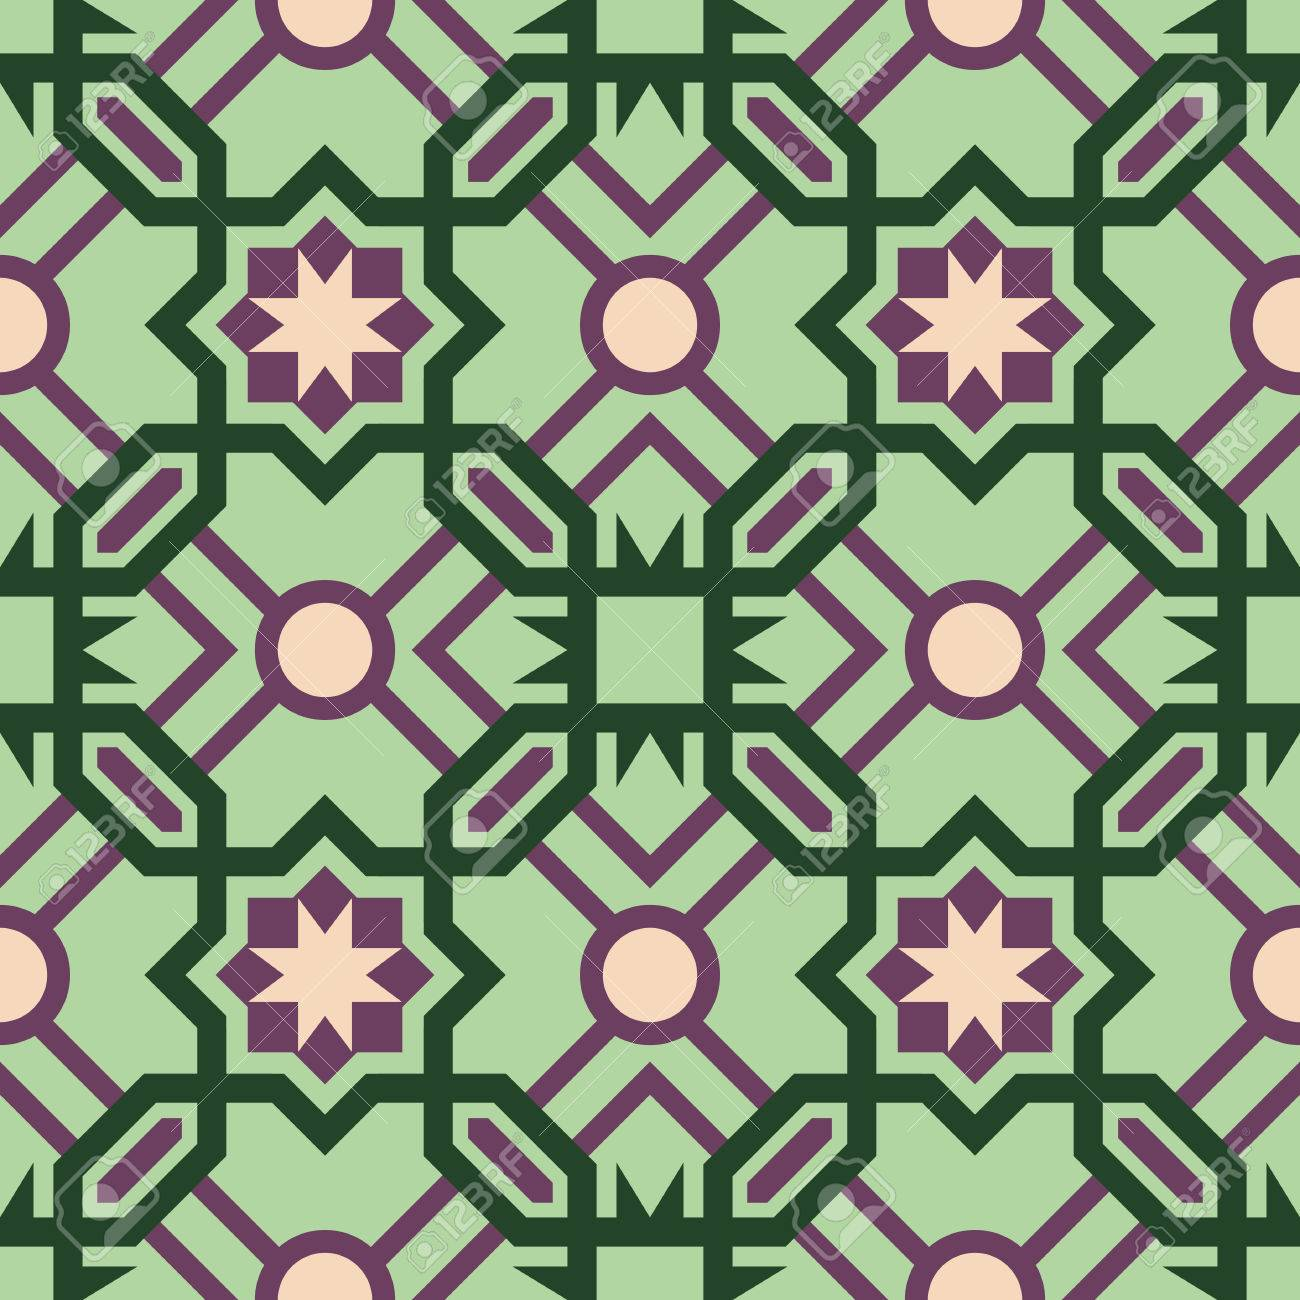 https www 123rf com photo 55094212 stock vector abstract ceramic mosaic floor tile seamless pattern with geometric moroccan shape design in green co html